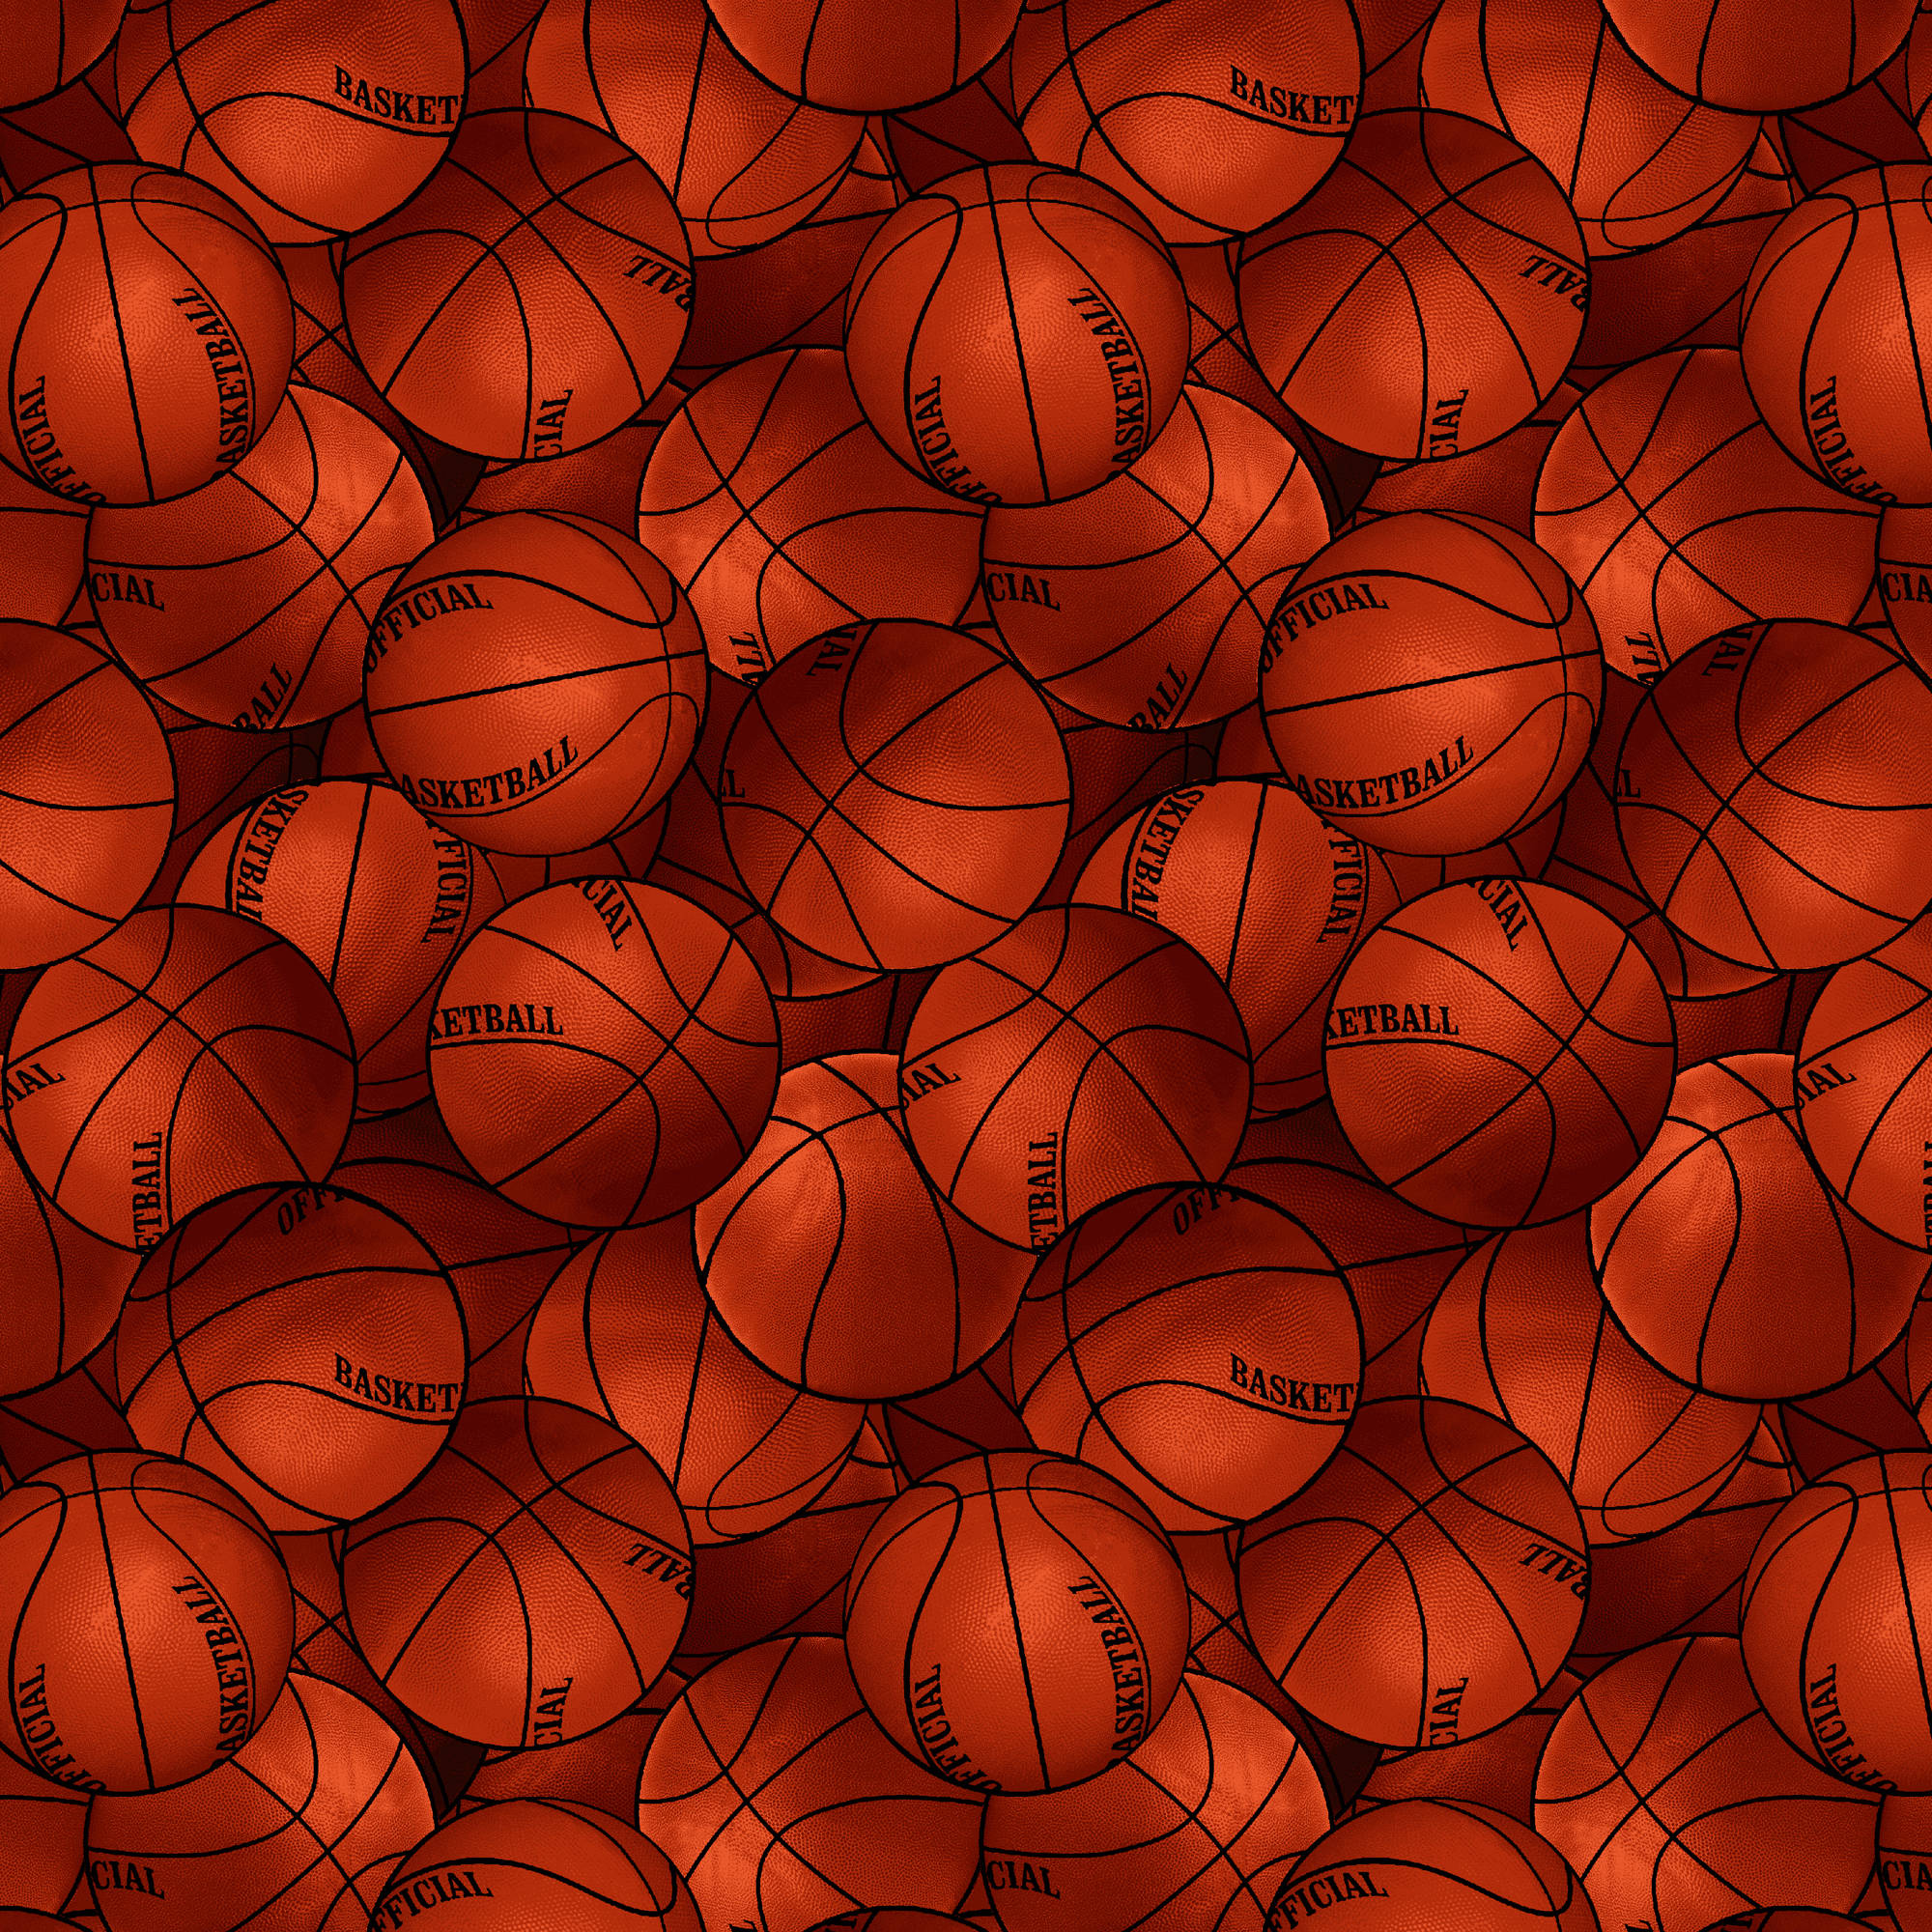 "David Textiles Cotton 36"" x 44"" Basketballs Quilting Fabric, 1 Each"